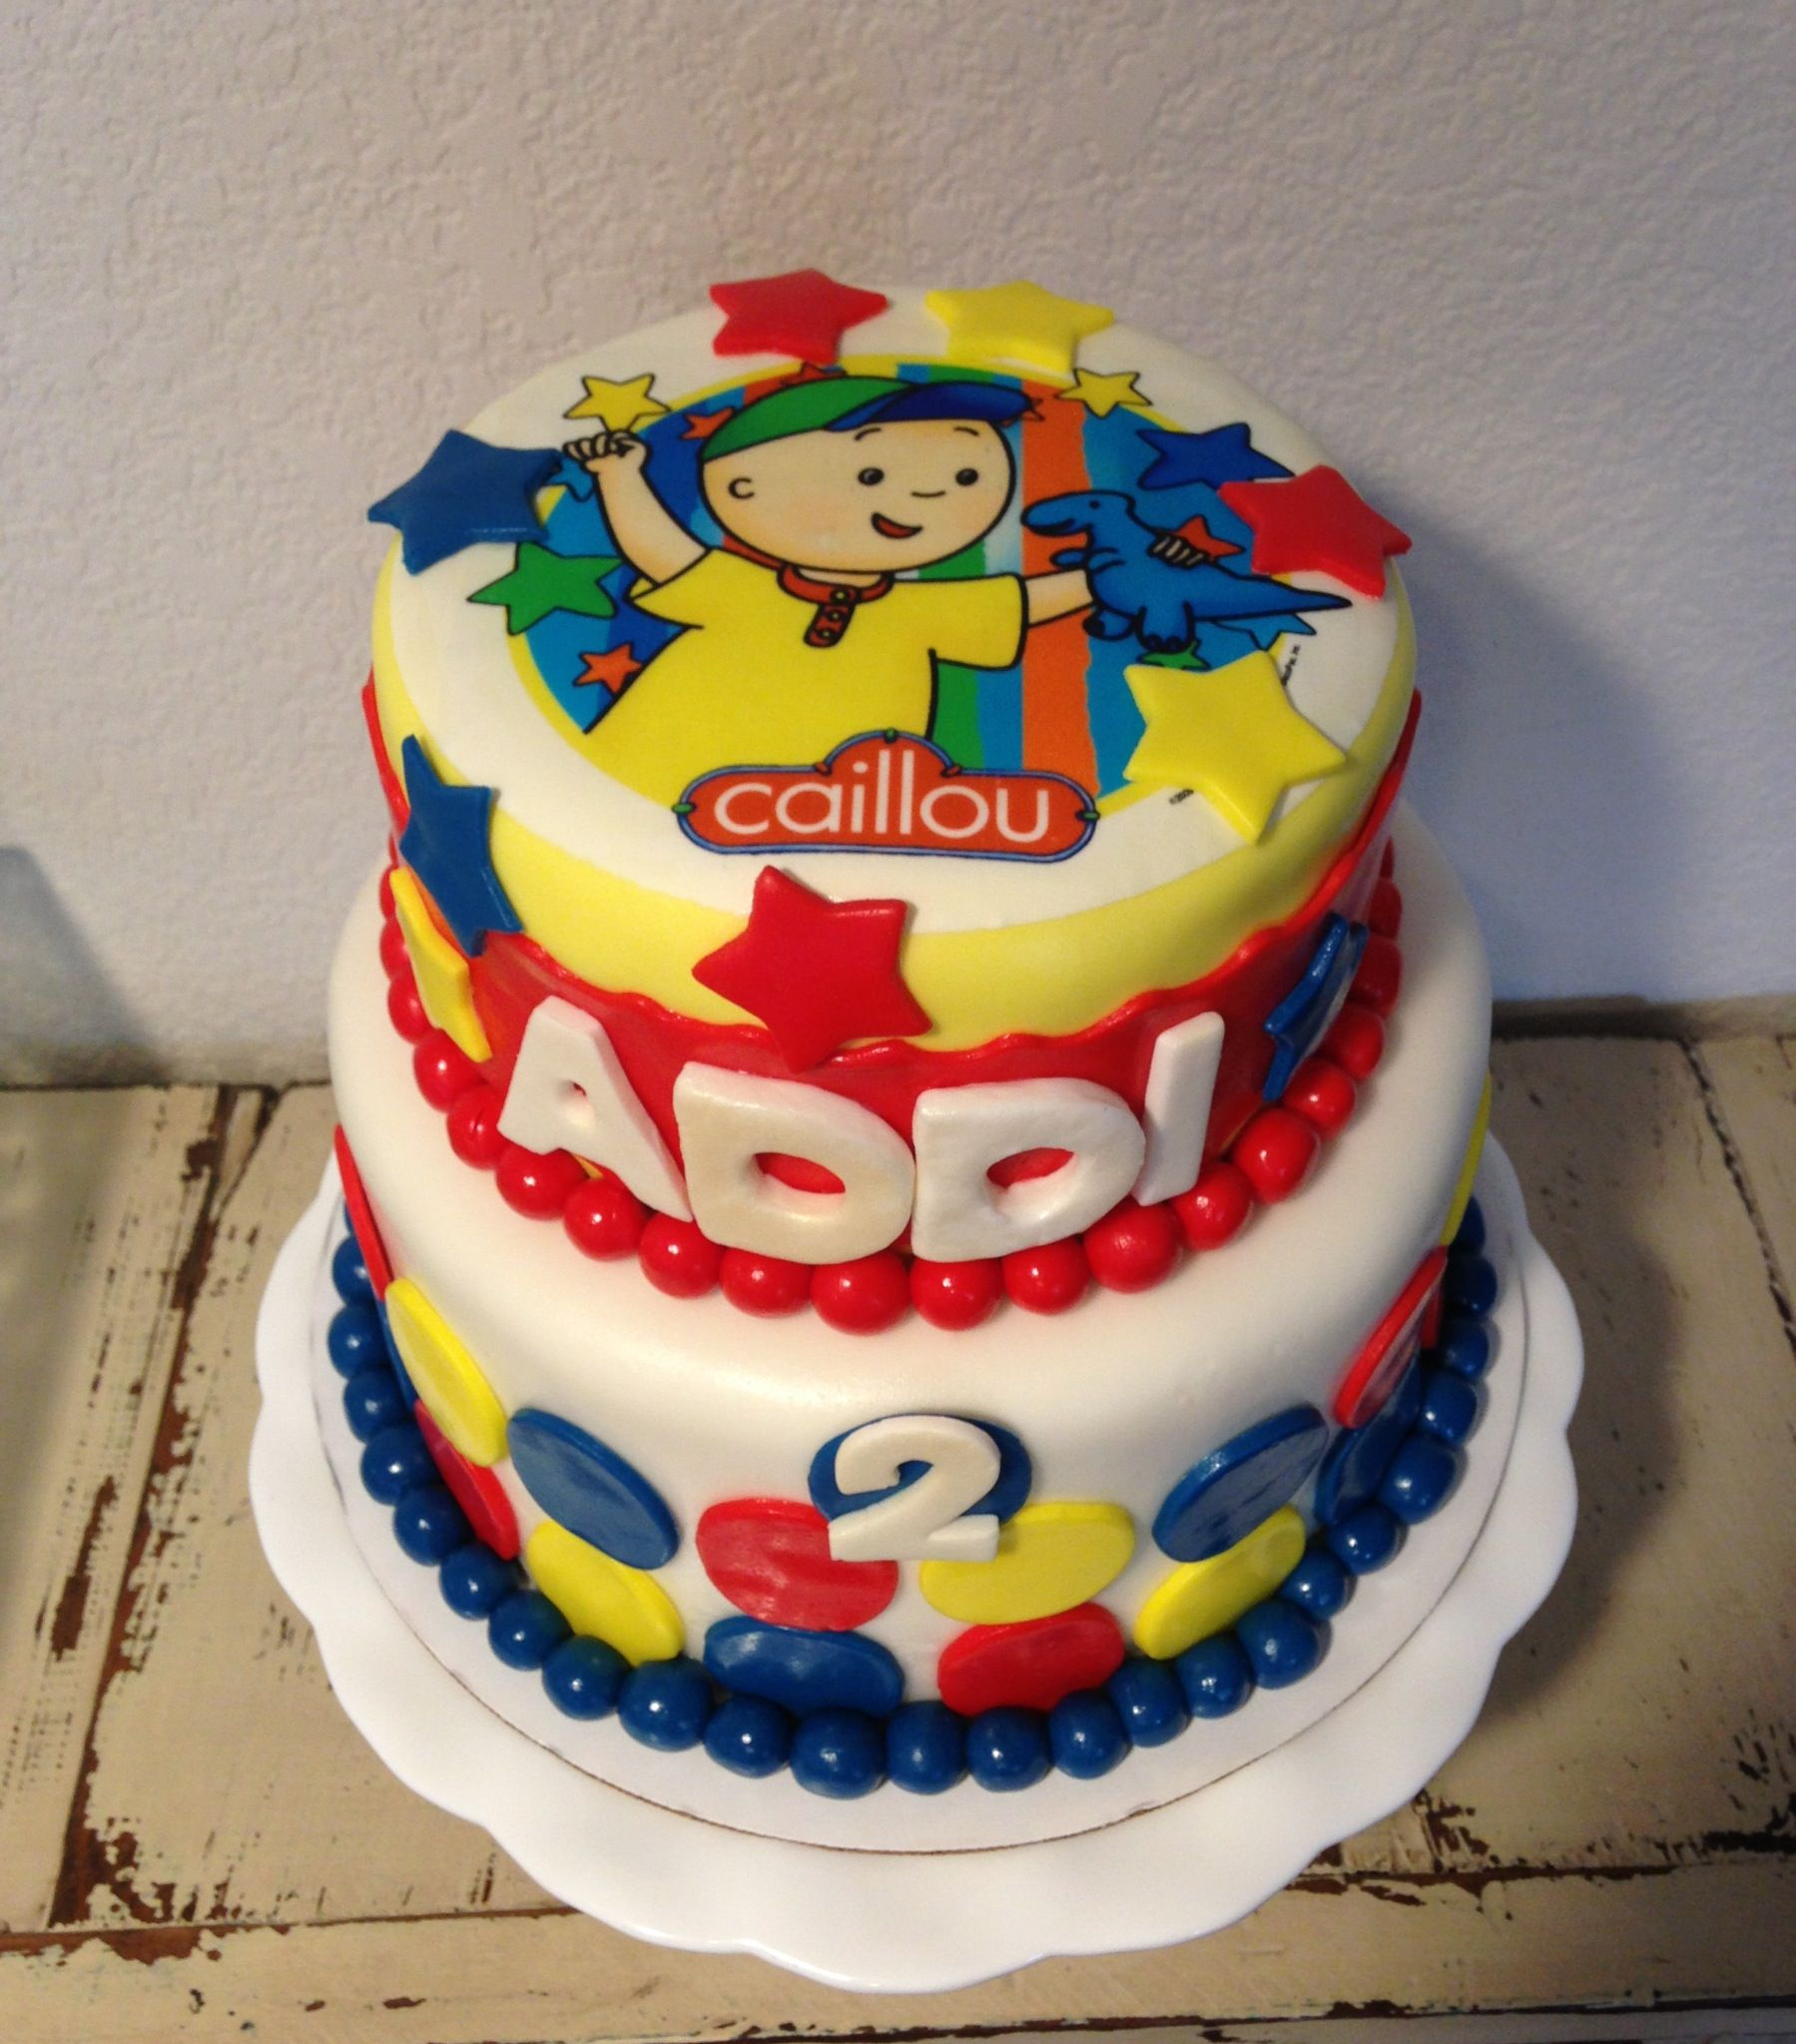 Cool Caillou Birthday Cake Cake Birthday Cake Pictures Birthday Funny Birthday Cards Online Elaedamsfinfo